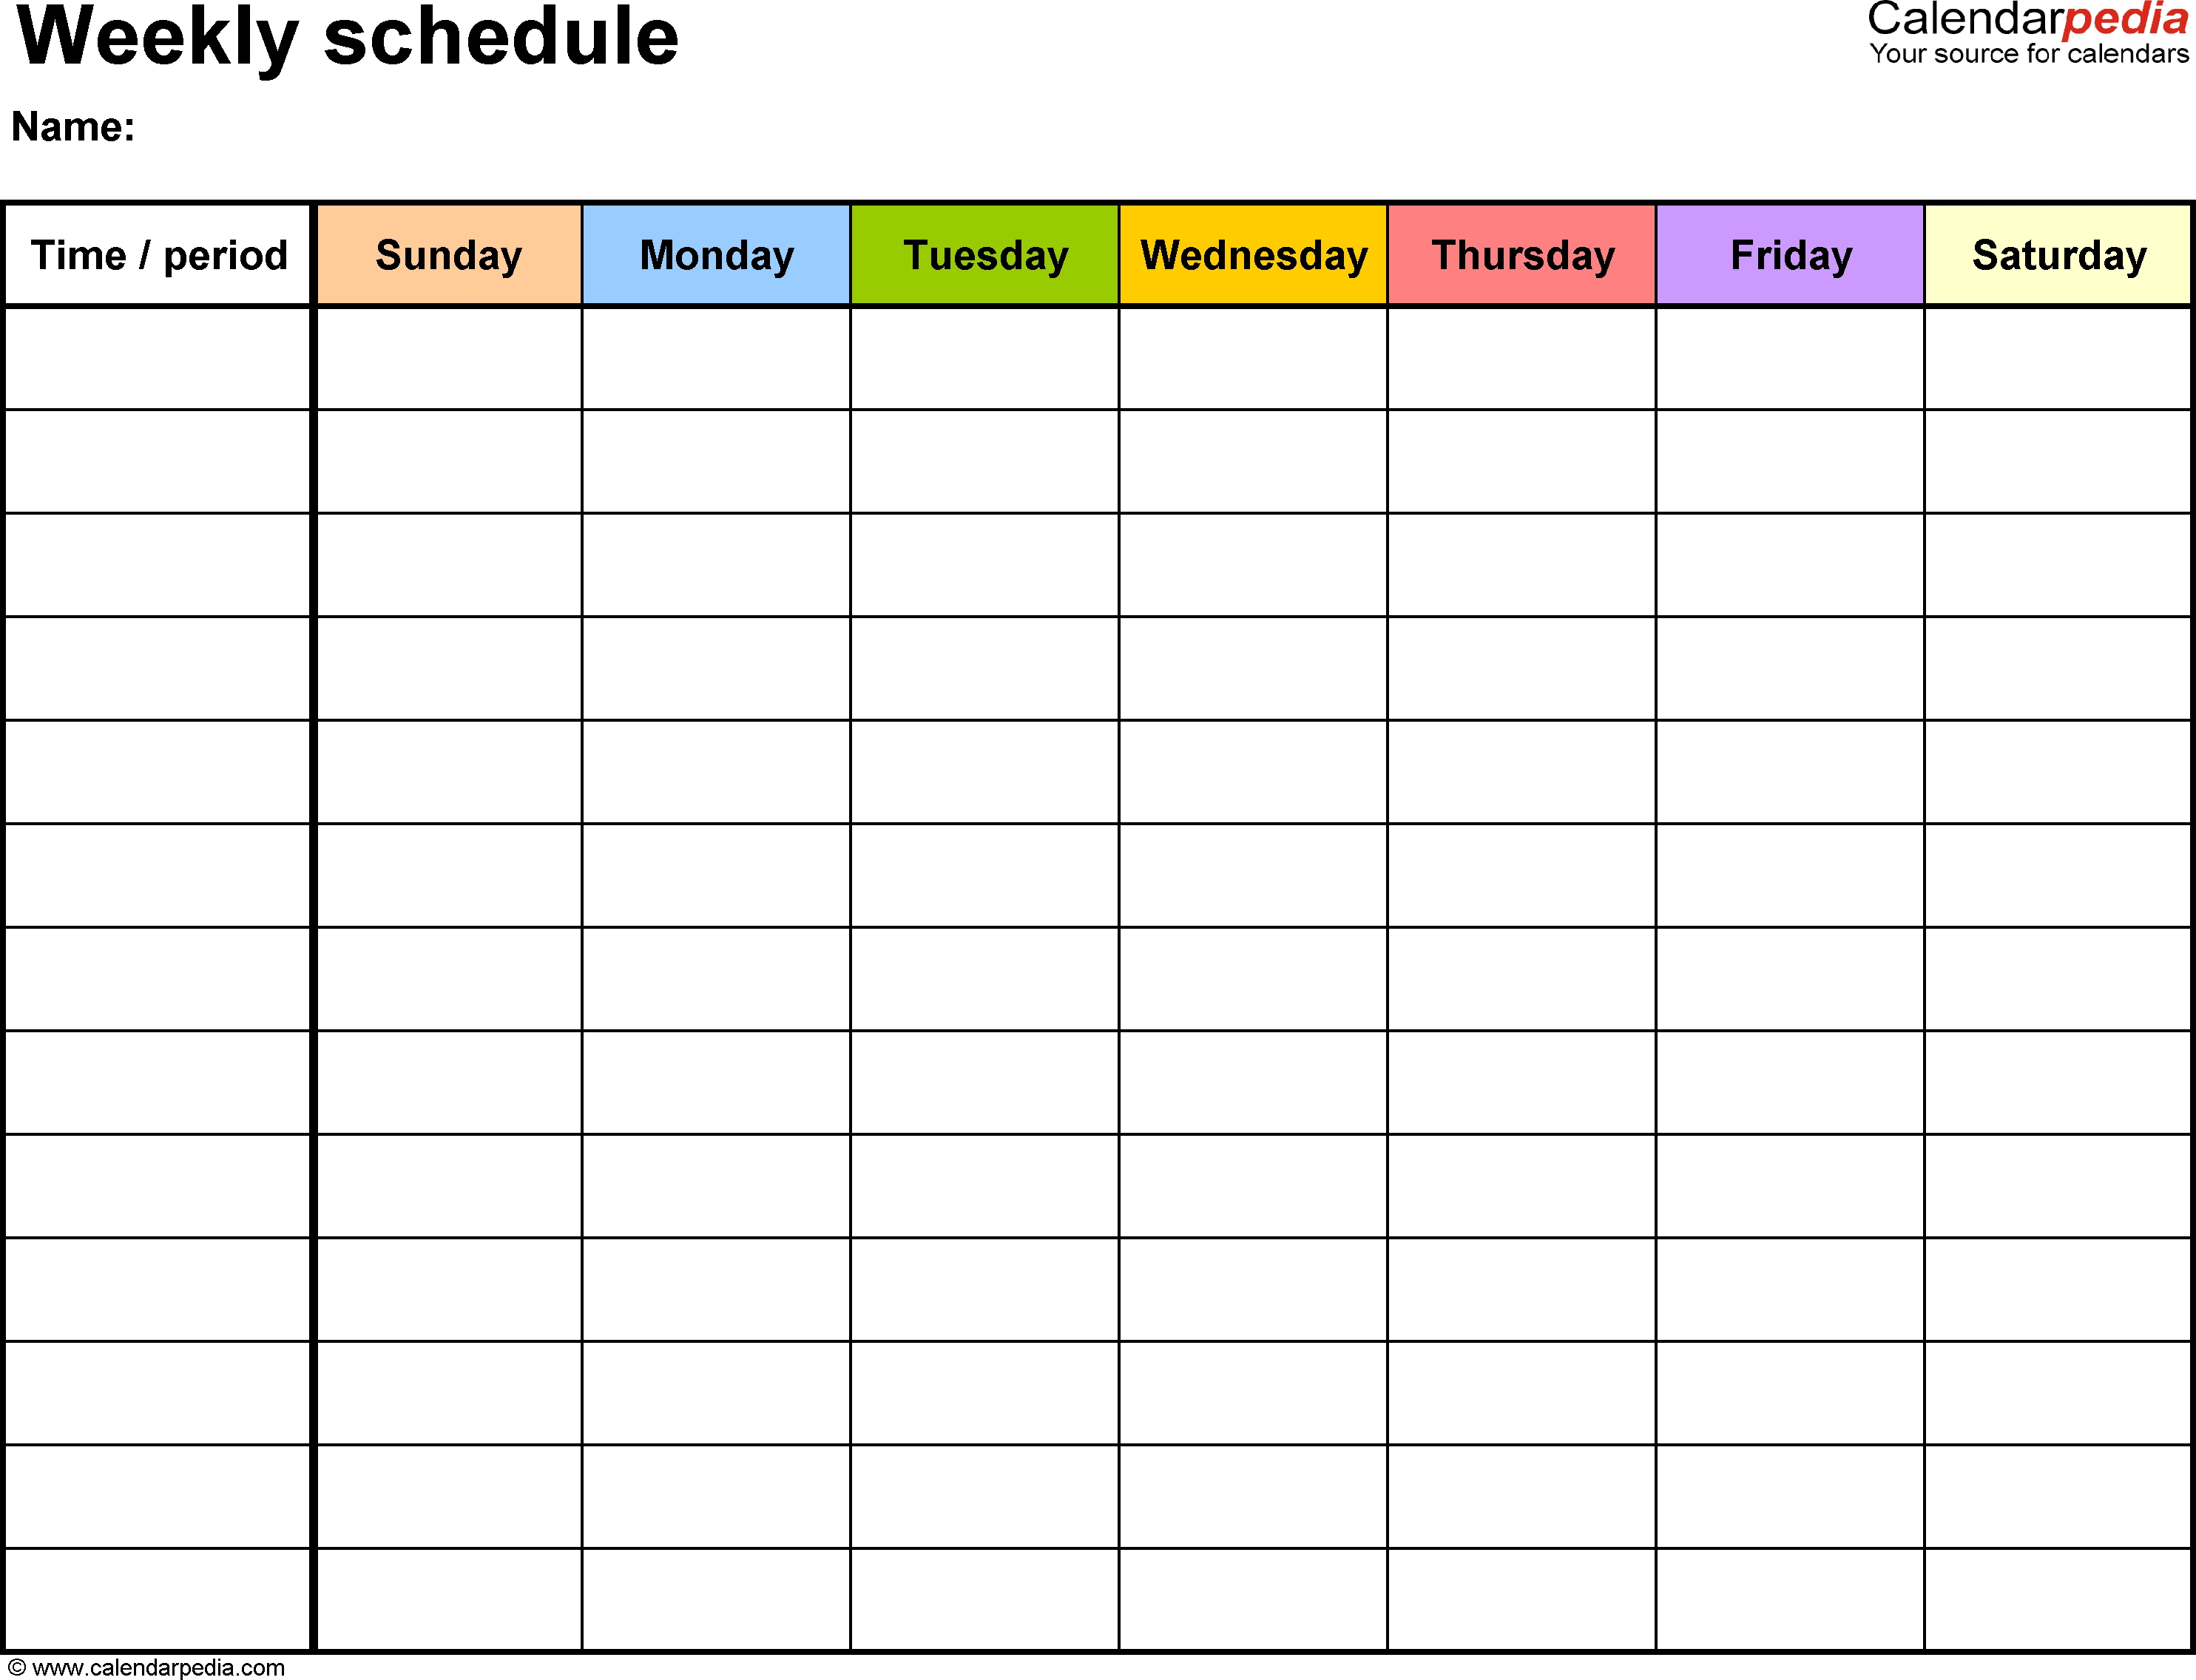 8 Day Calendar Template - Yeniscale.co  30 Day Calendar Template Excel